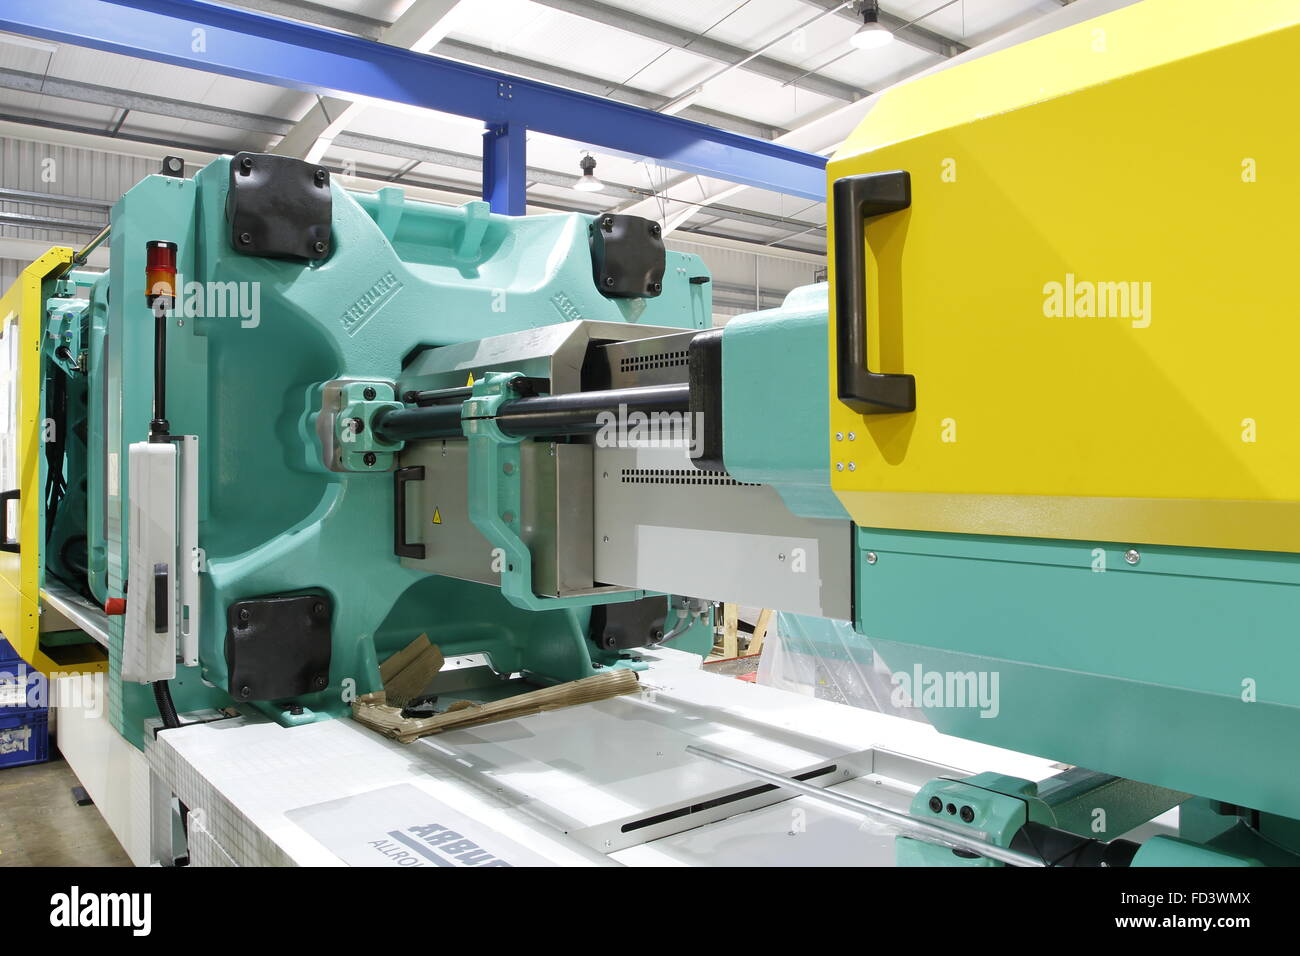 Injection Moulding Machine - Stock Image